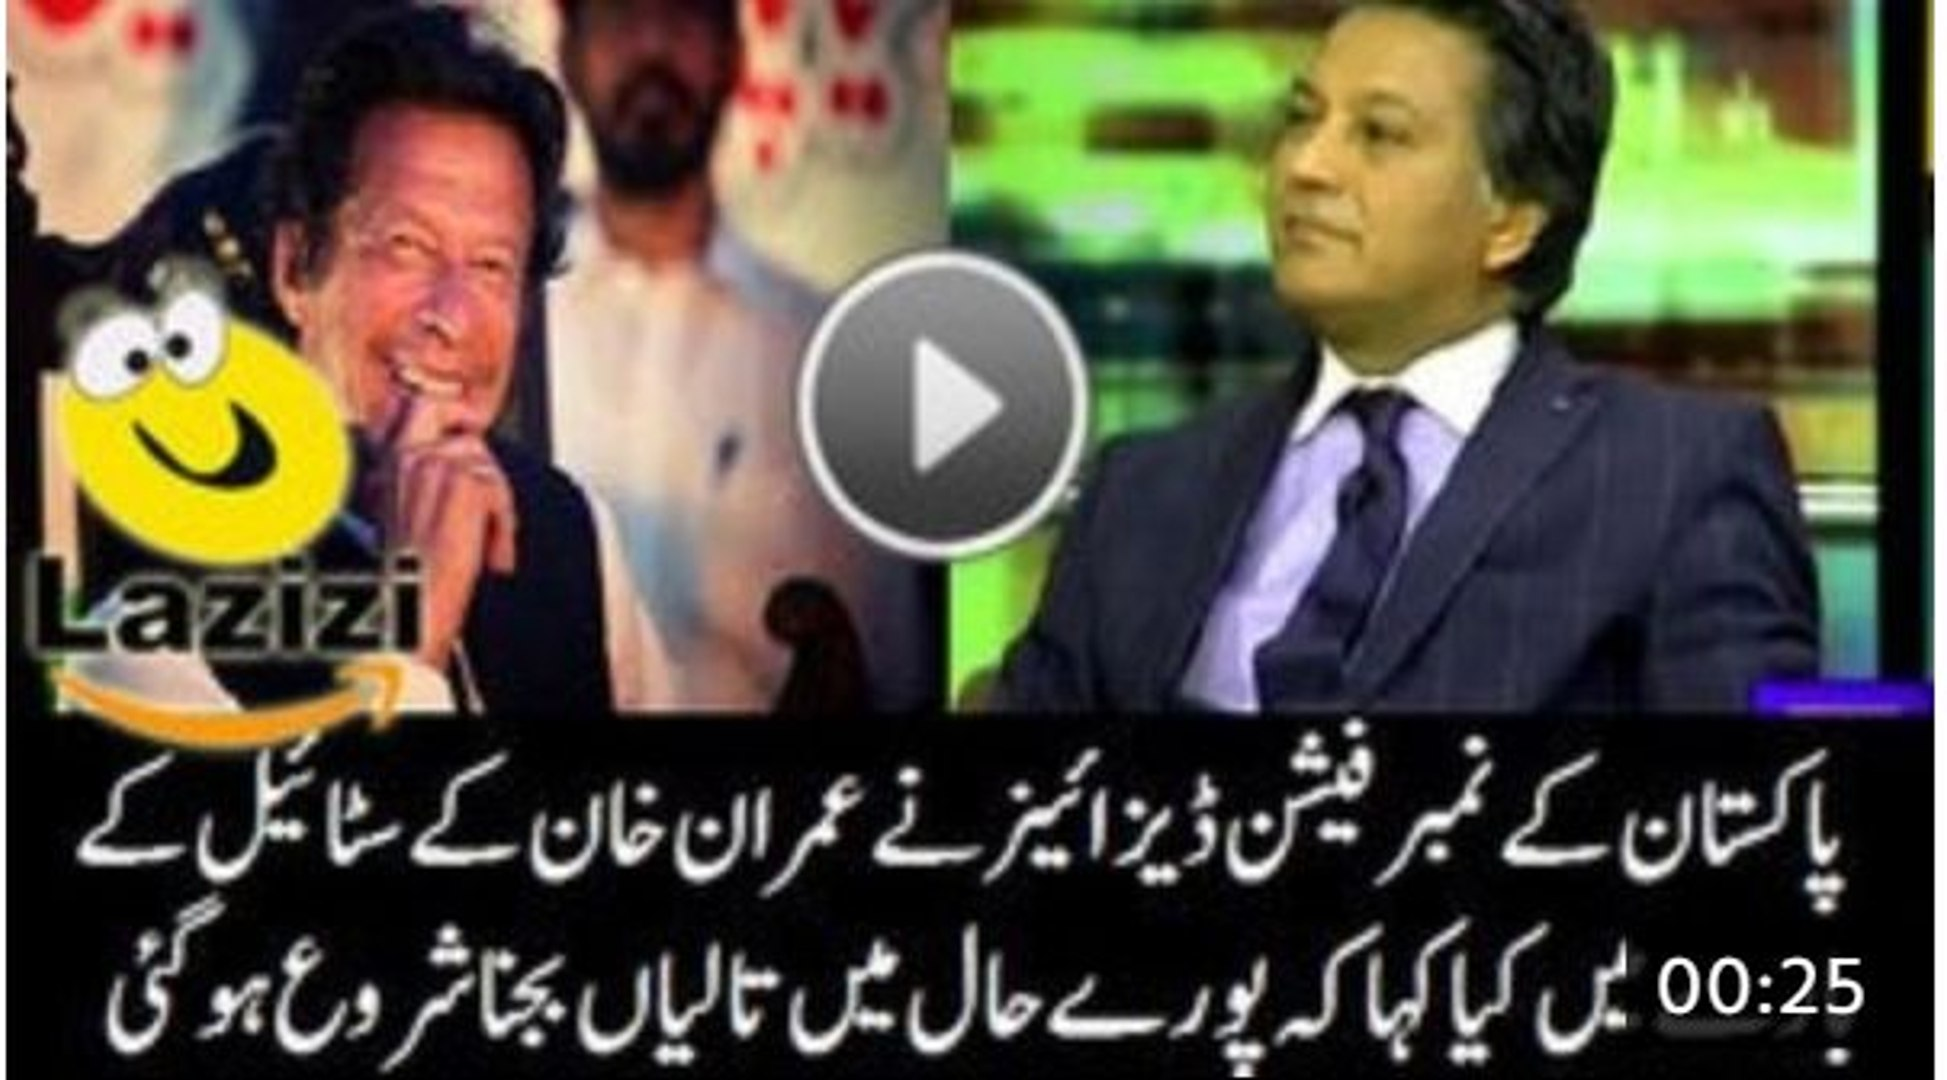 How Mehmood Bhatti Fashion Designer Is Praising The Style Of Imran Khan Video Dailymotion Video Dailymotion